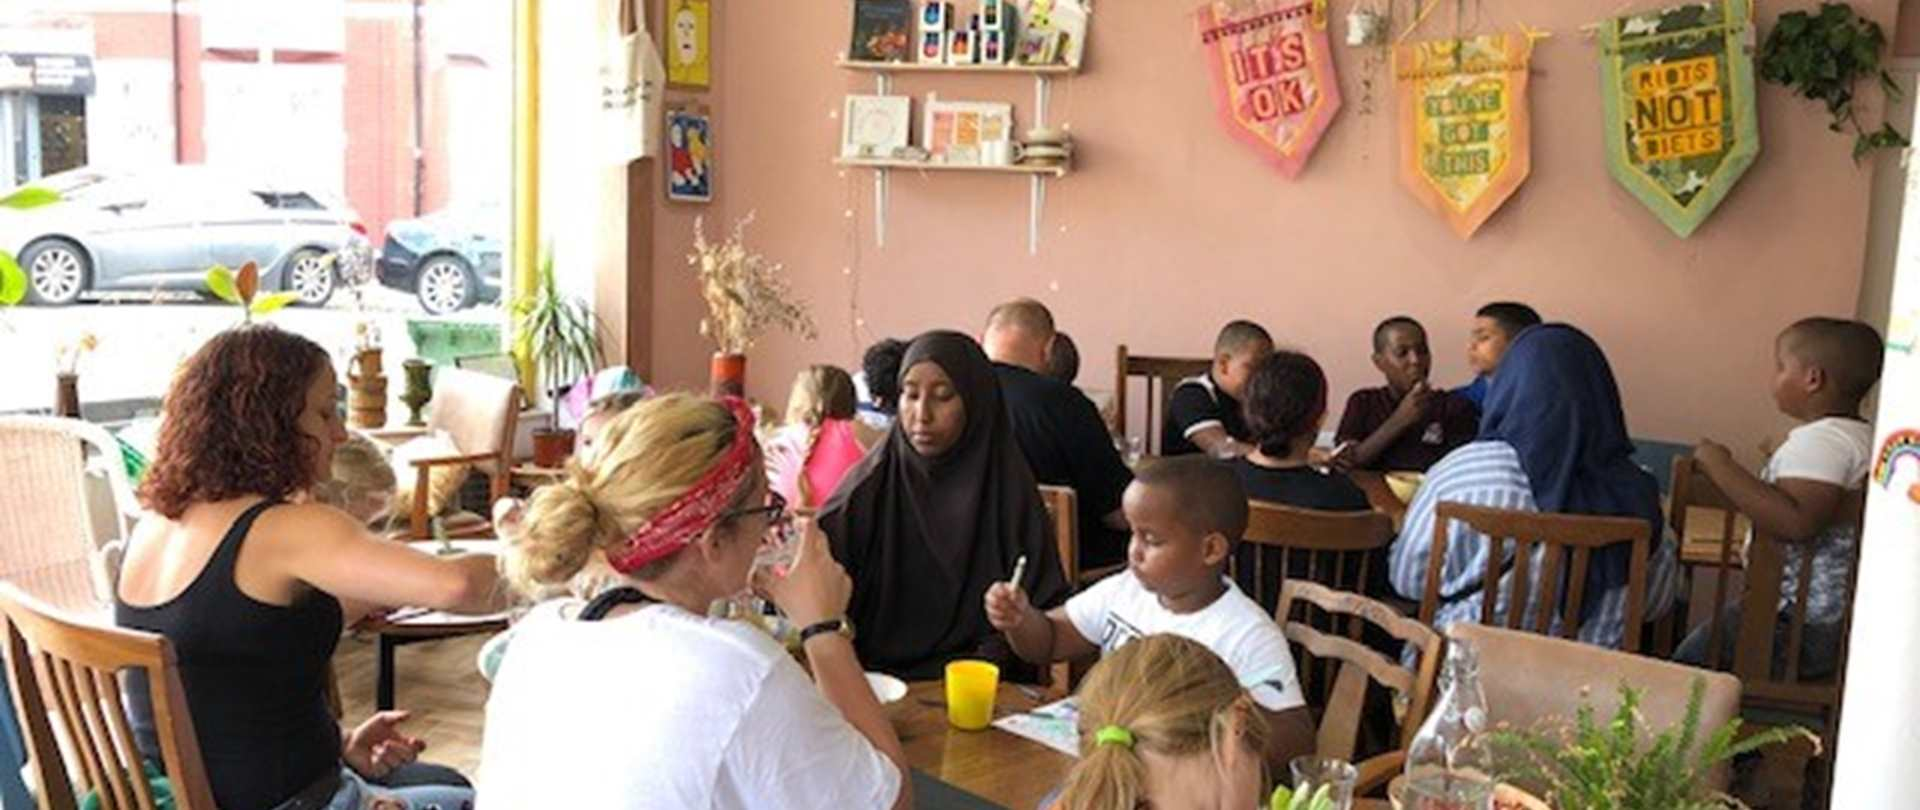 A group of children and adults enjoying a meal together at a community cafe